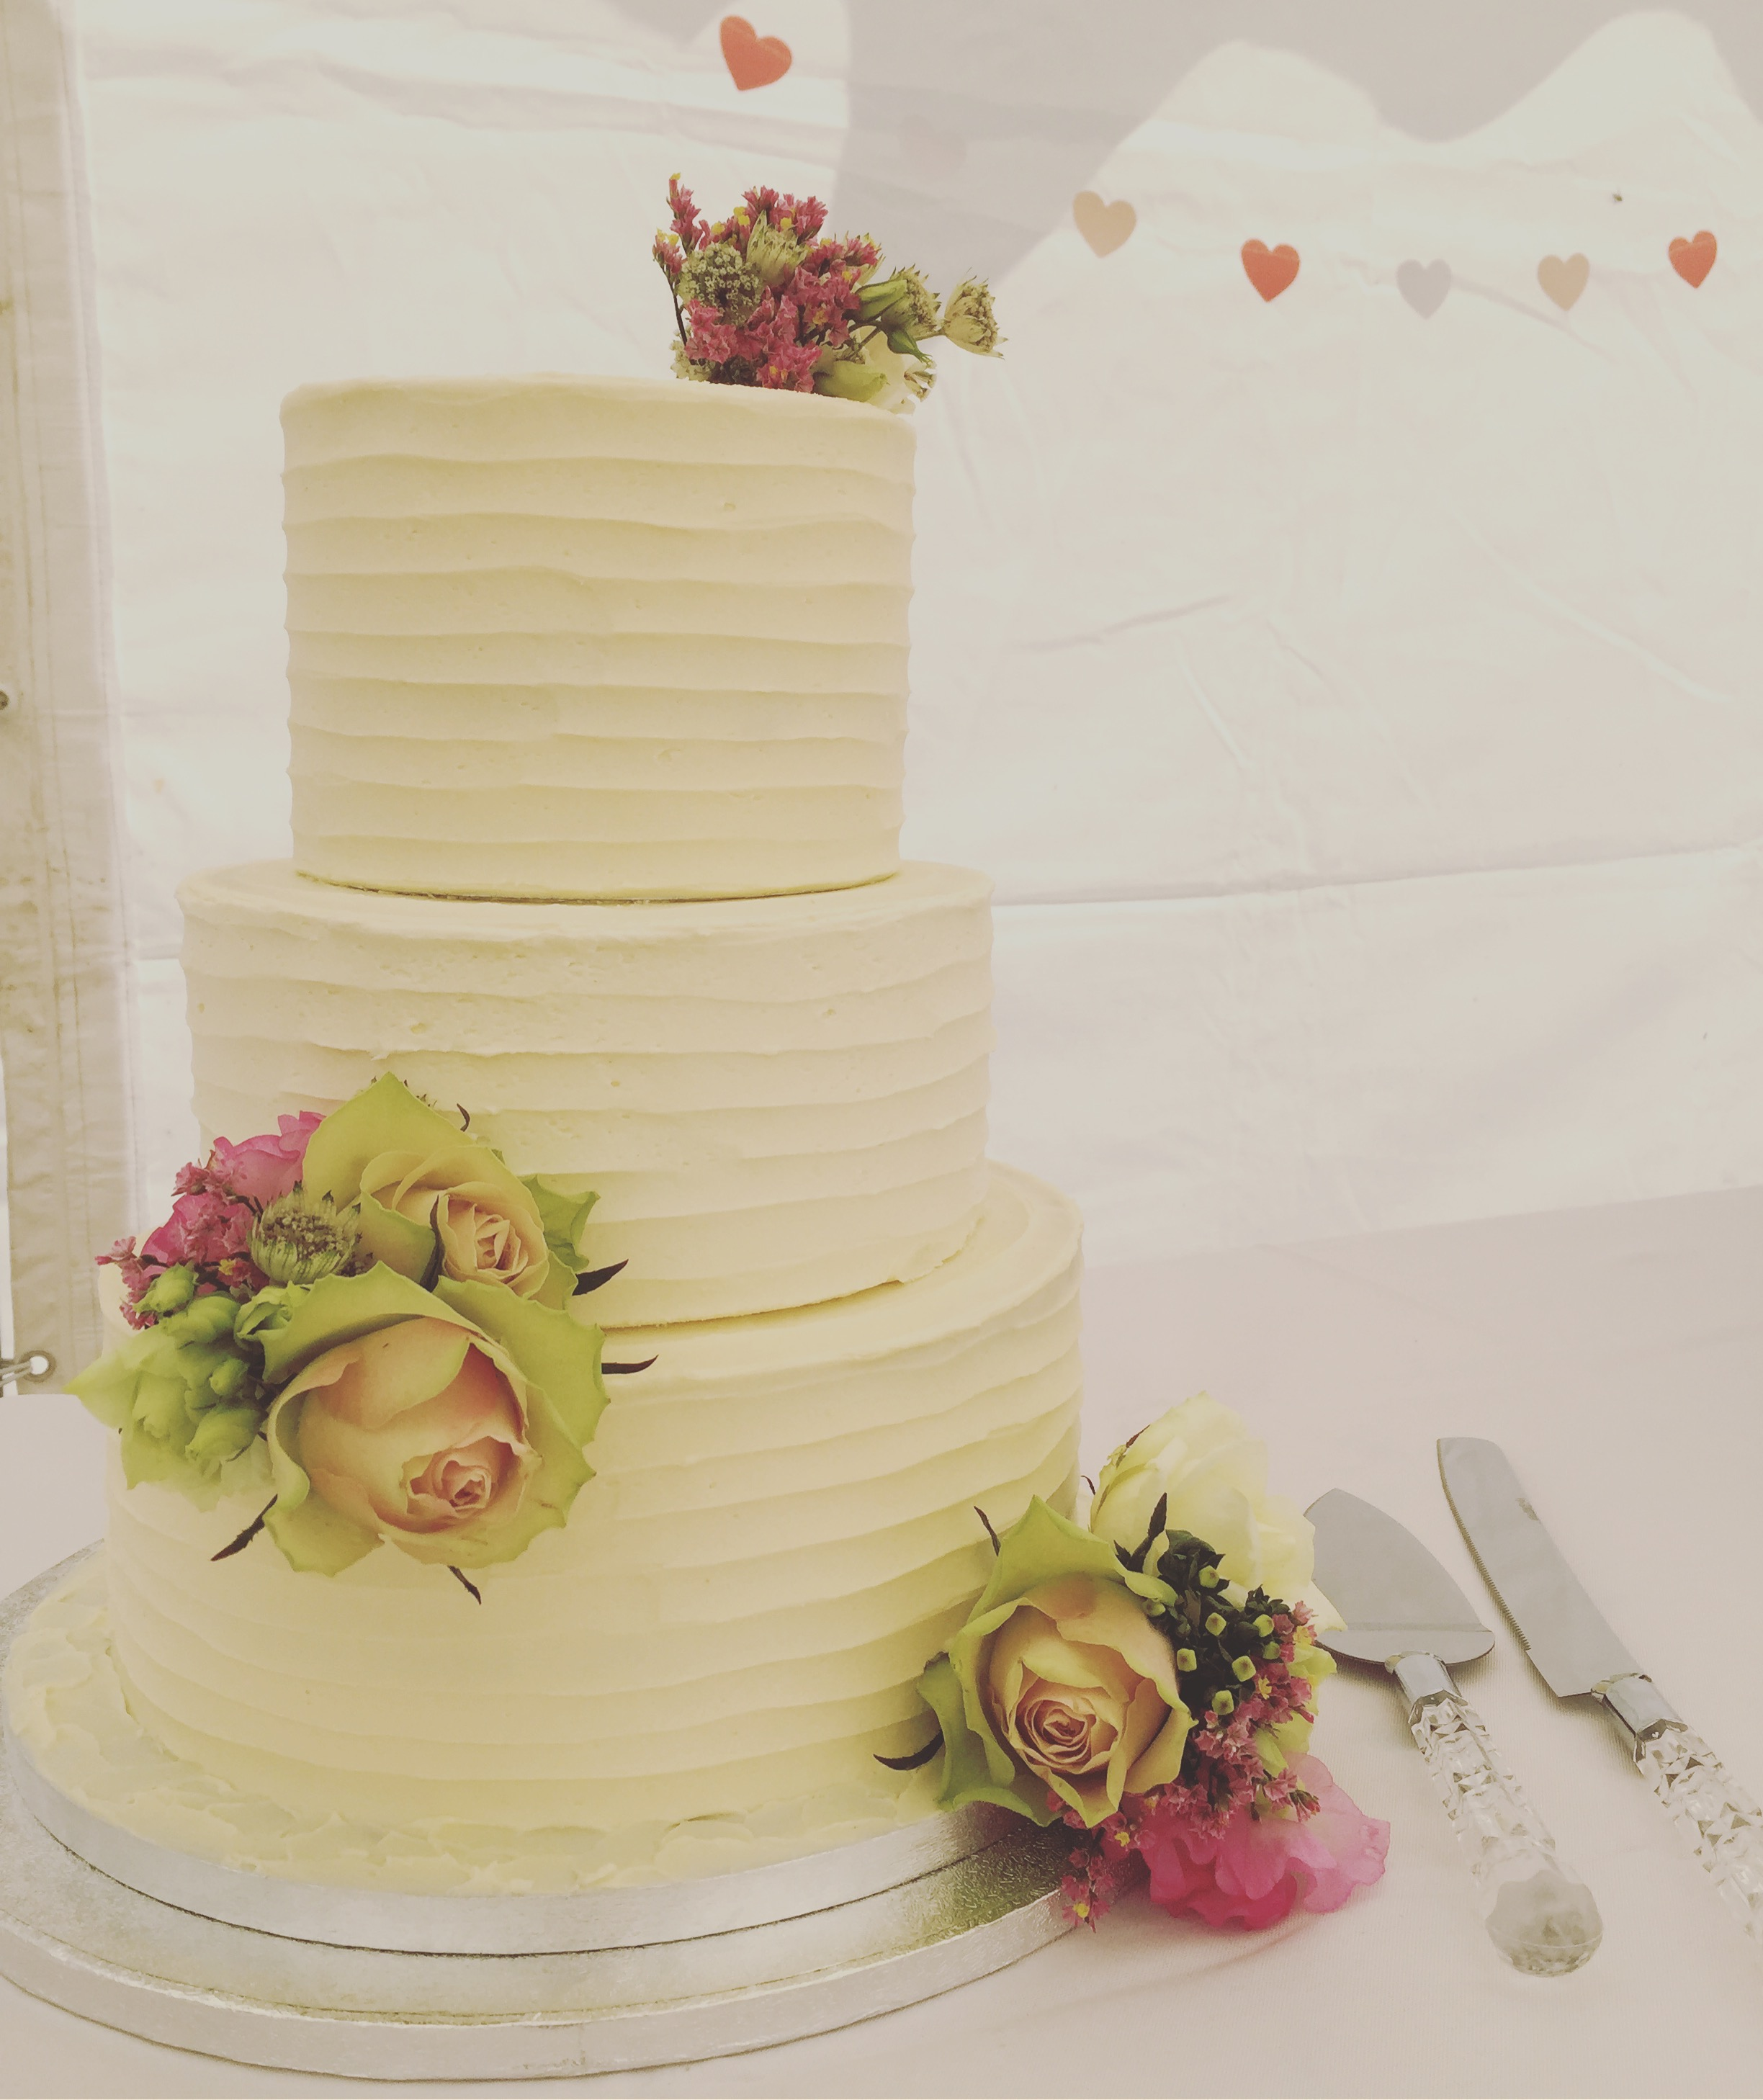 Tiered buttercream wedding cake